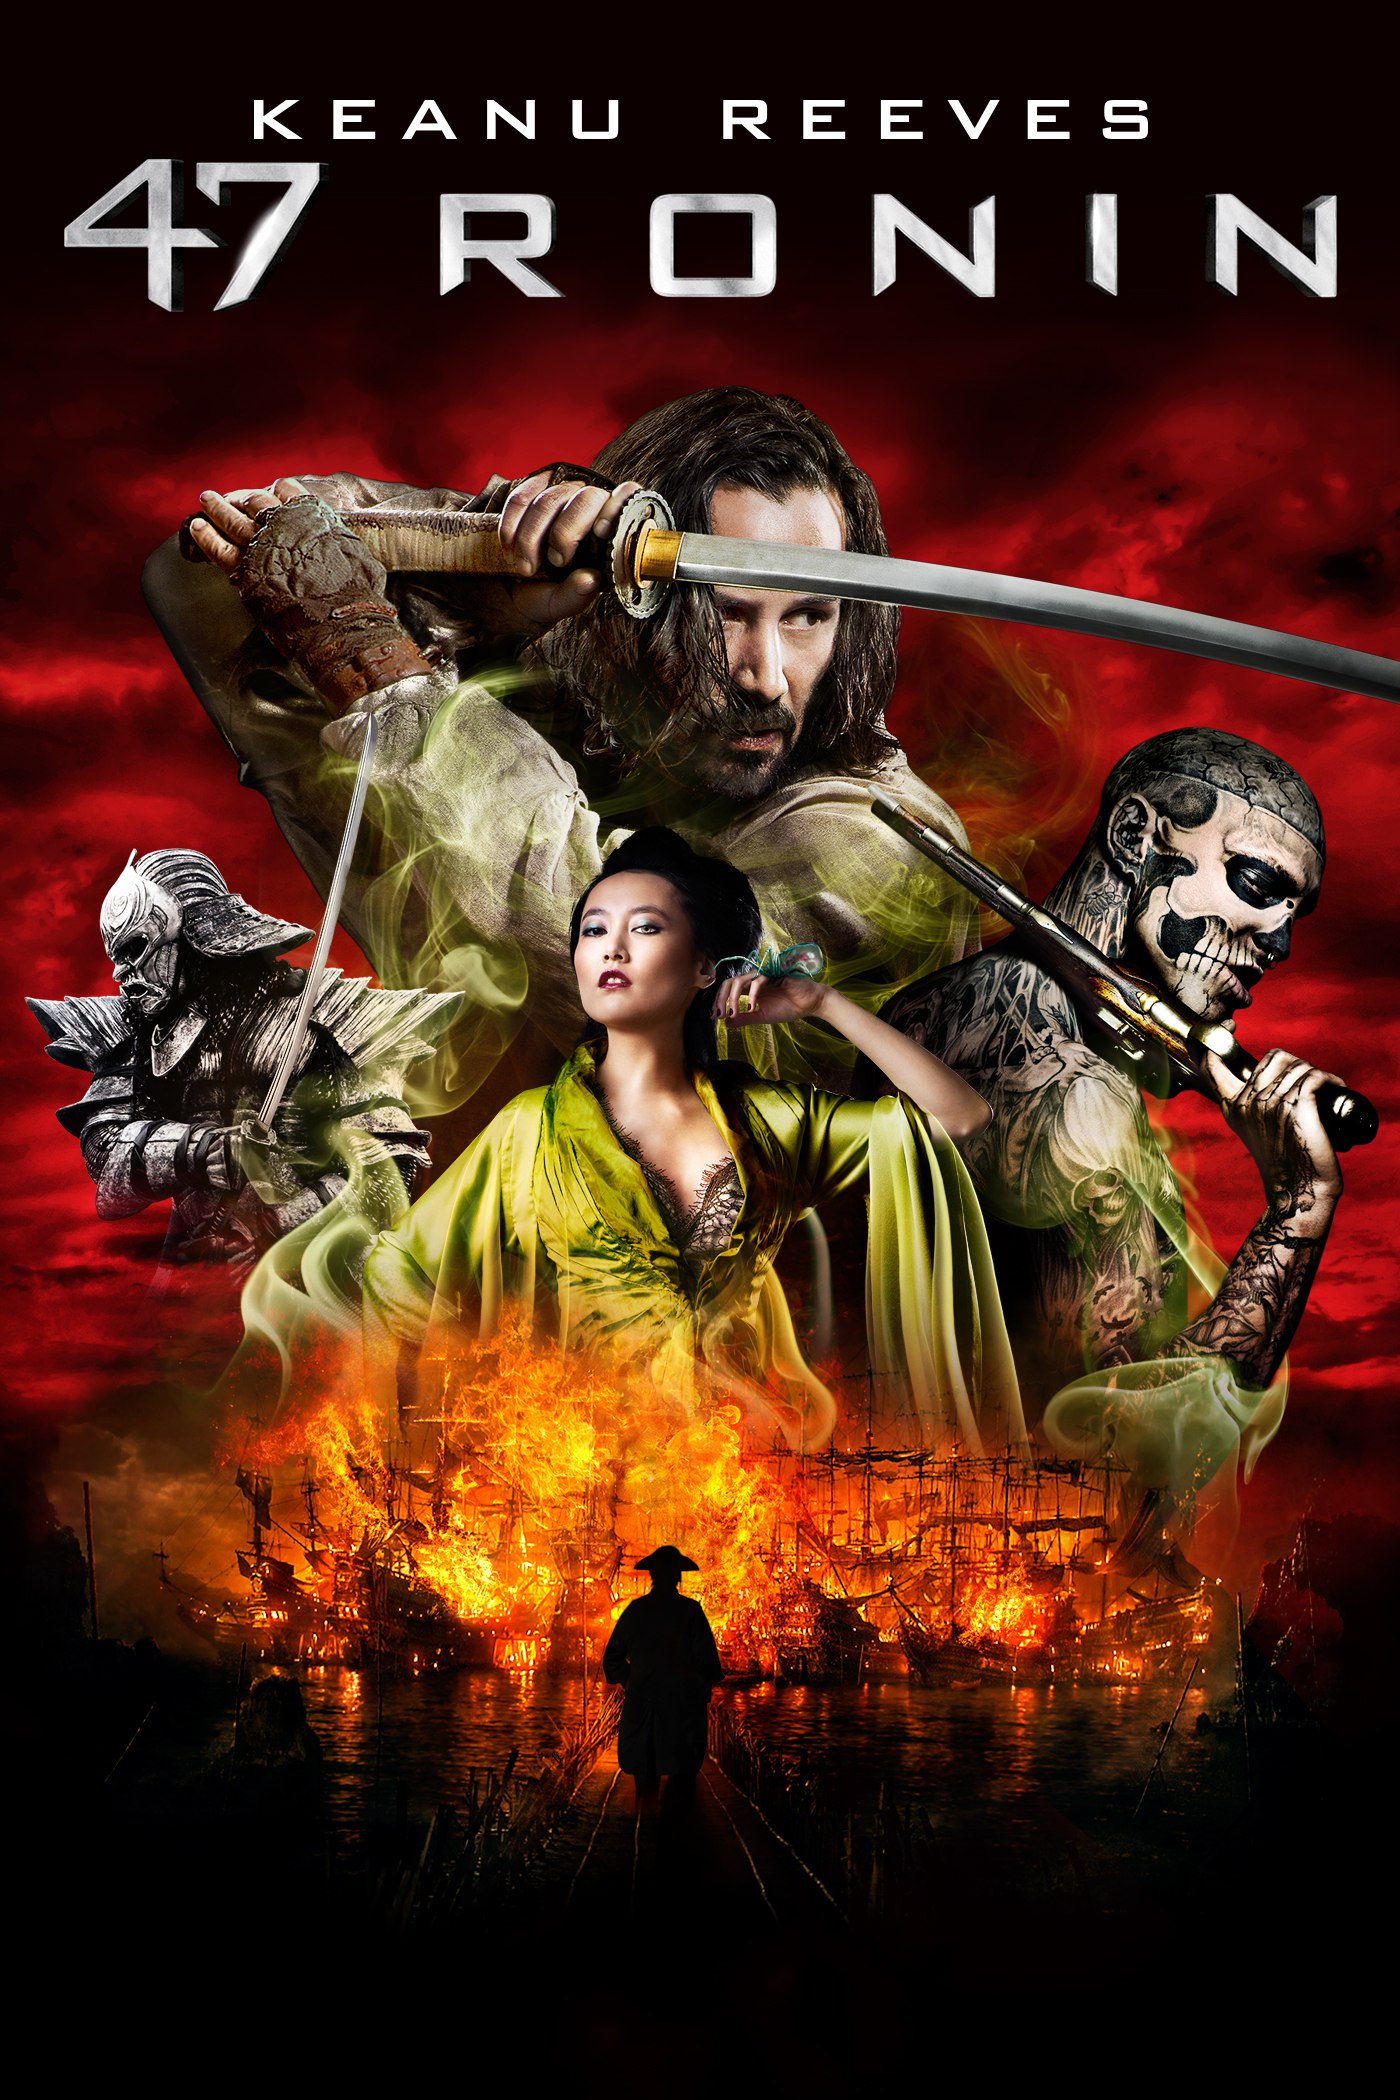 47 ronin 2013 review tims film reviews